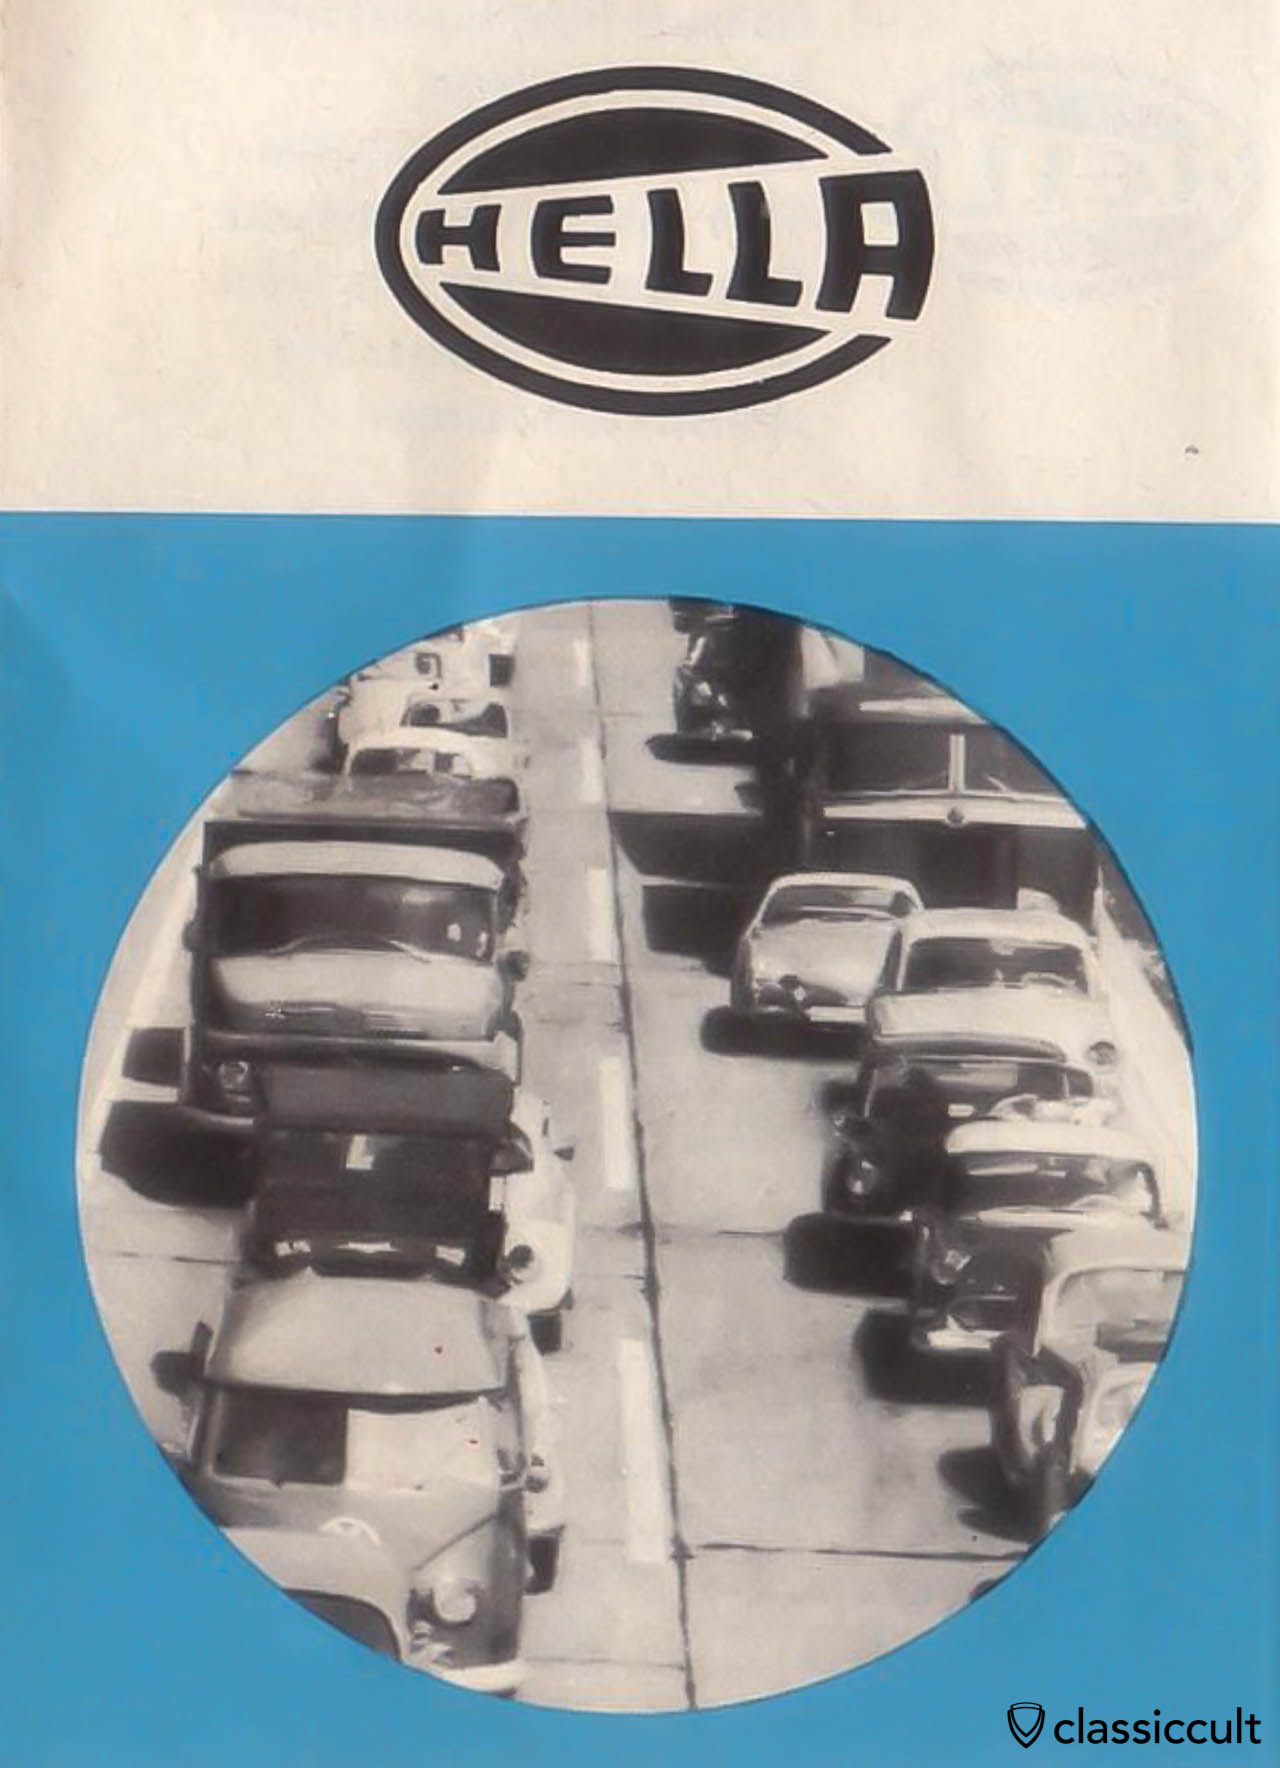 Hella lights advertisement 1960